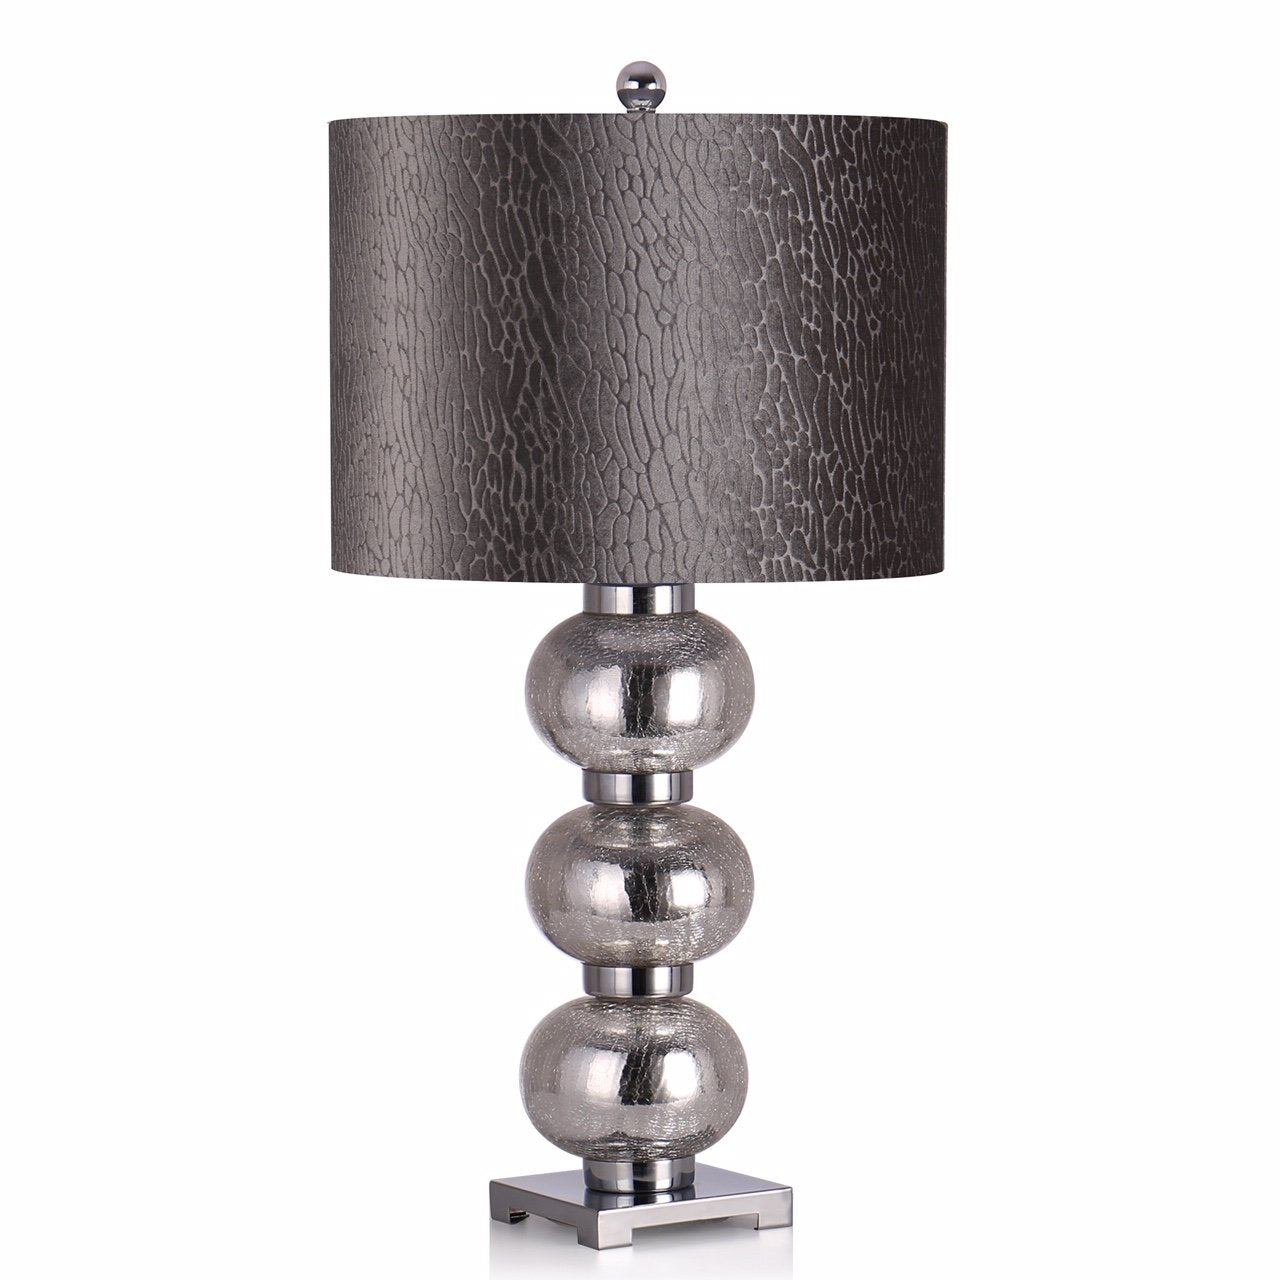 BILLIE TABLE LAMP